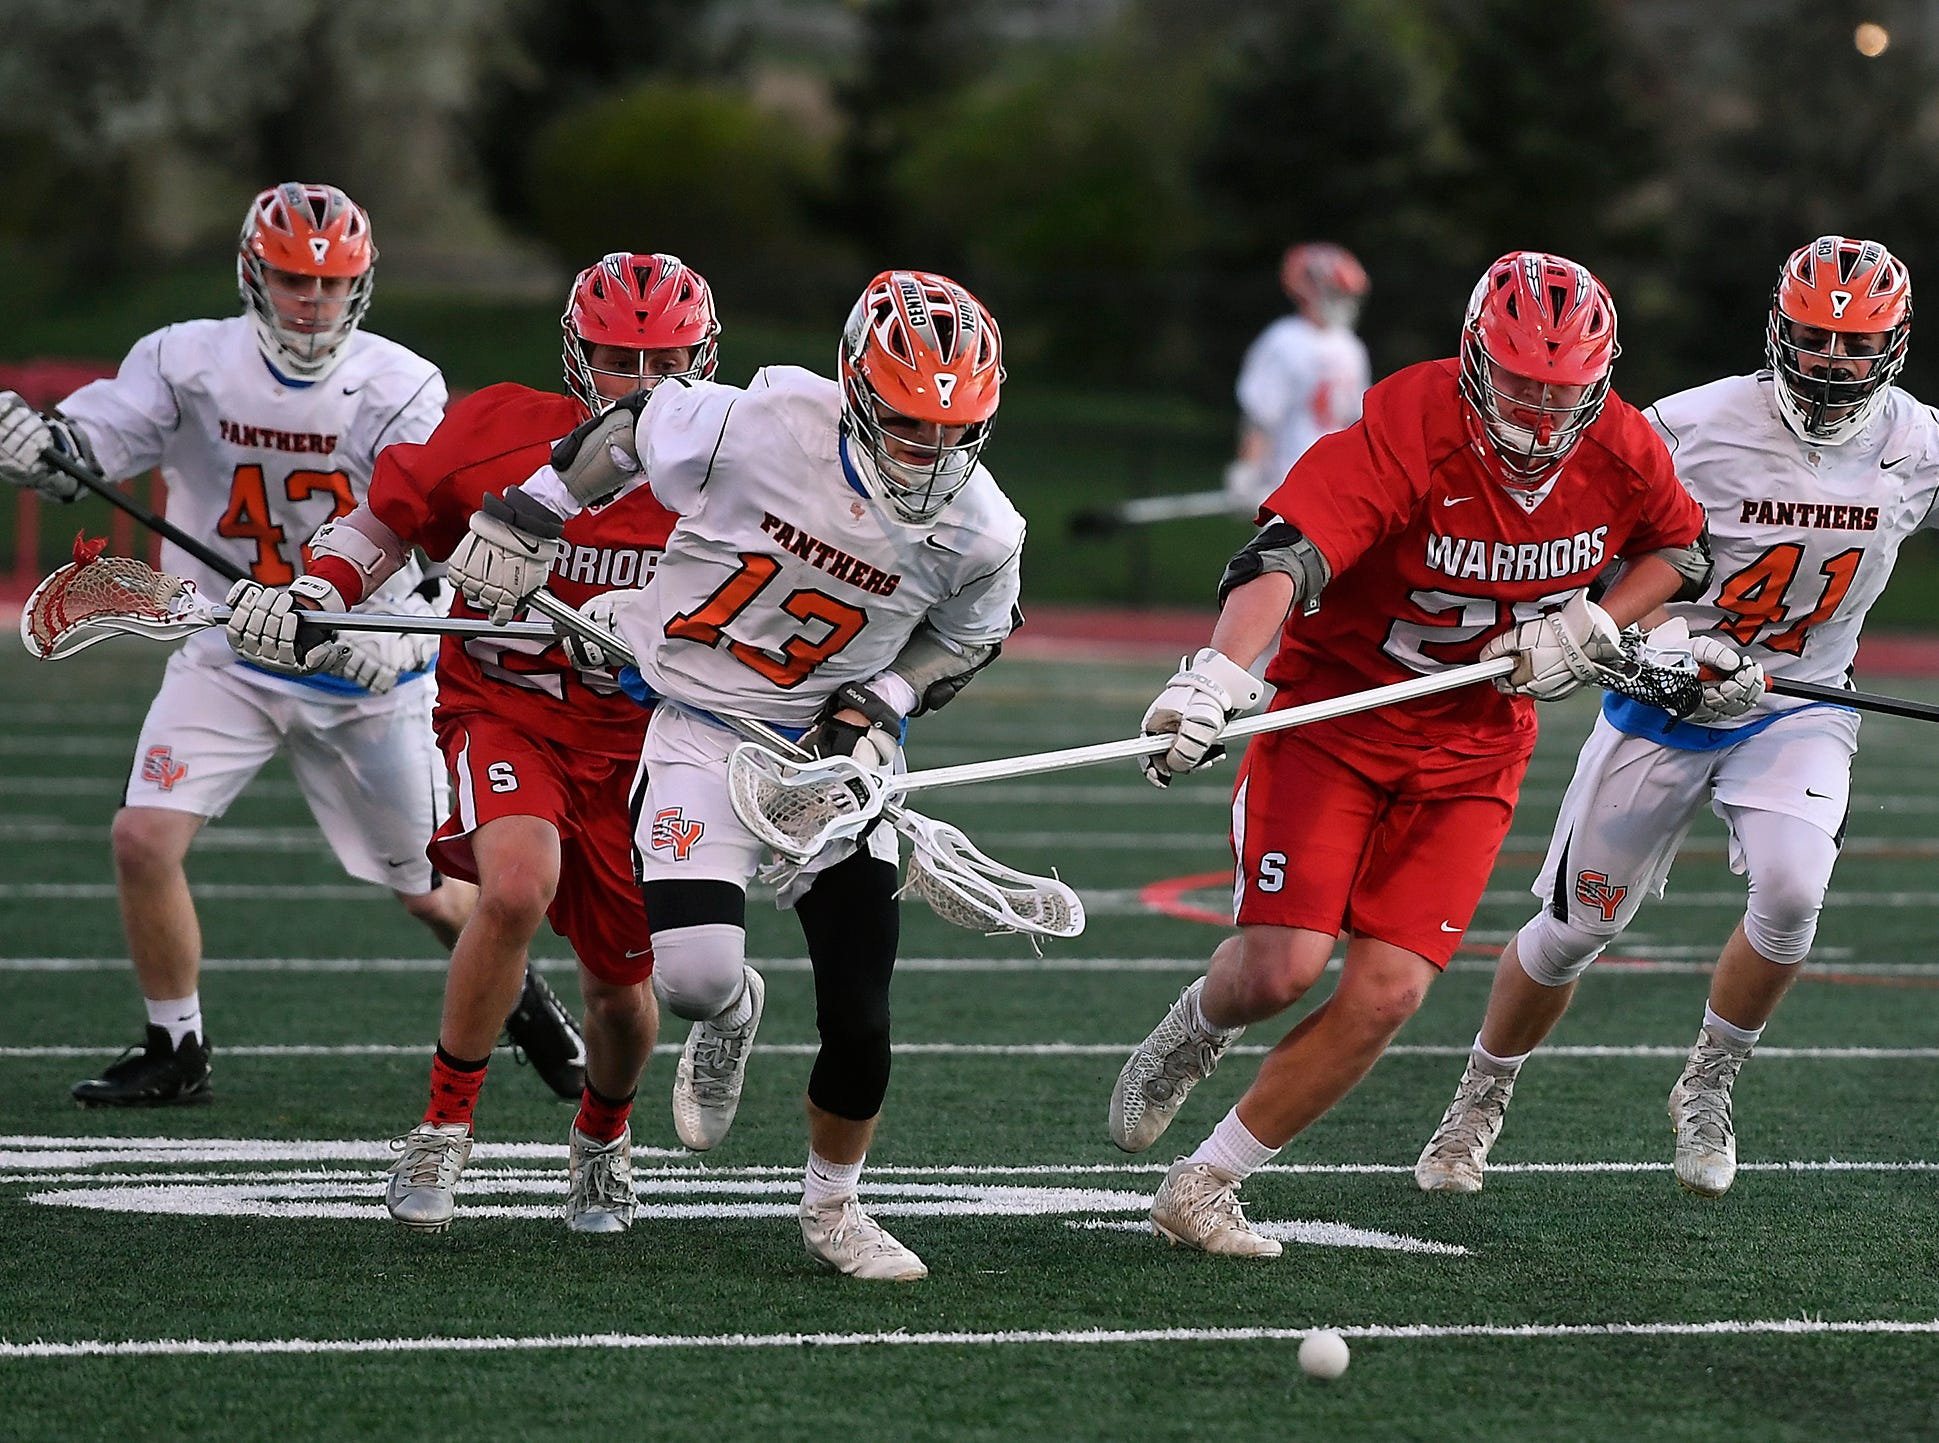 Logan Pauluch of Central York (13) and Susquehannock's Daniel Clapp chase down a loose ball, Monday, April 15, 2019.John A. Pavoncello photo